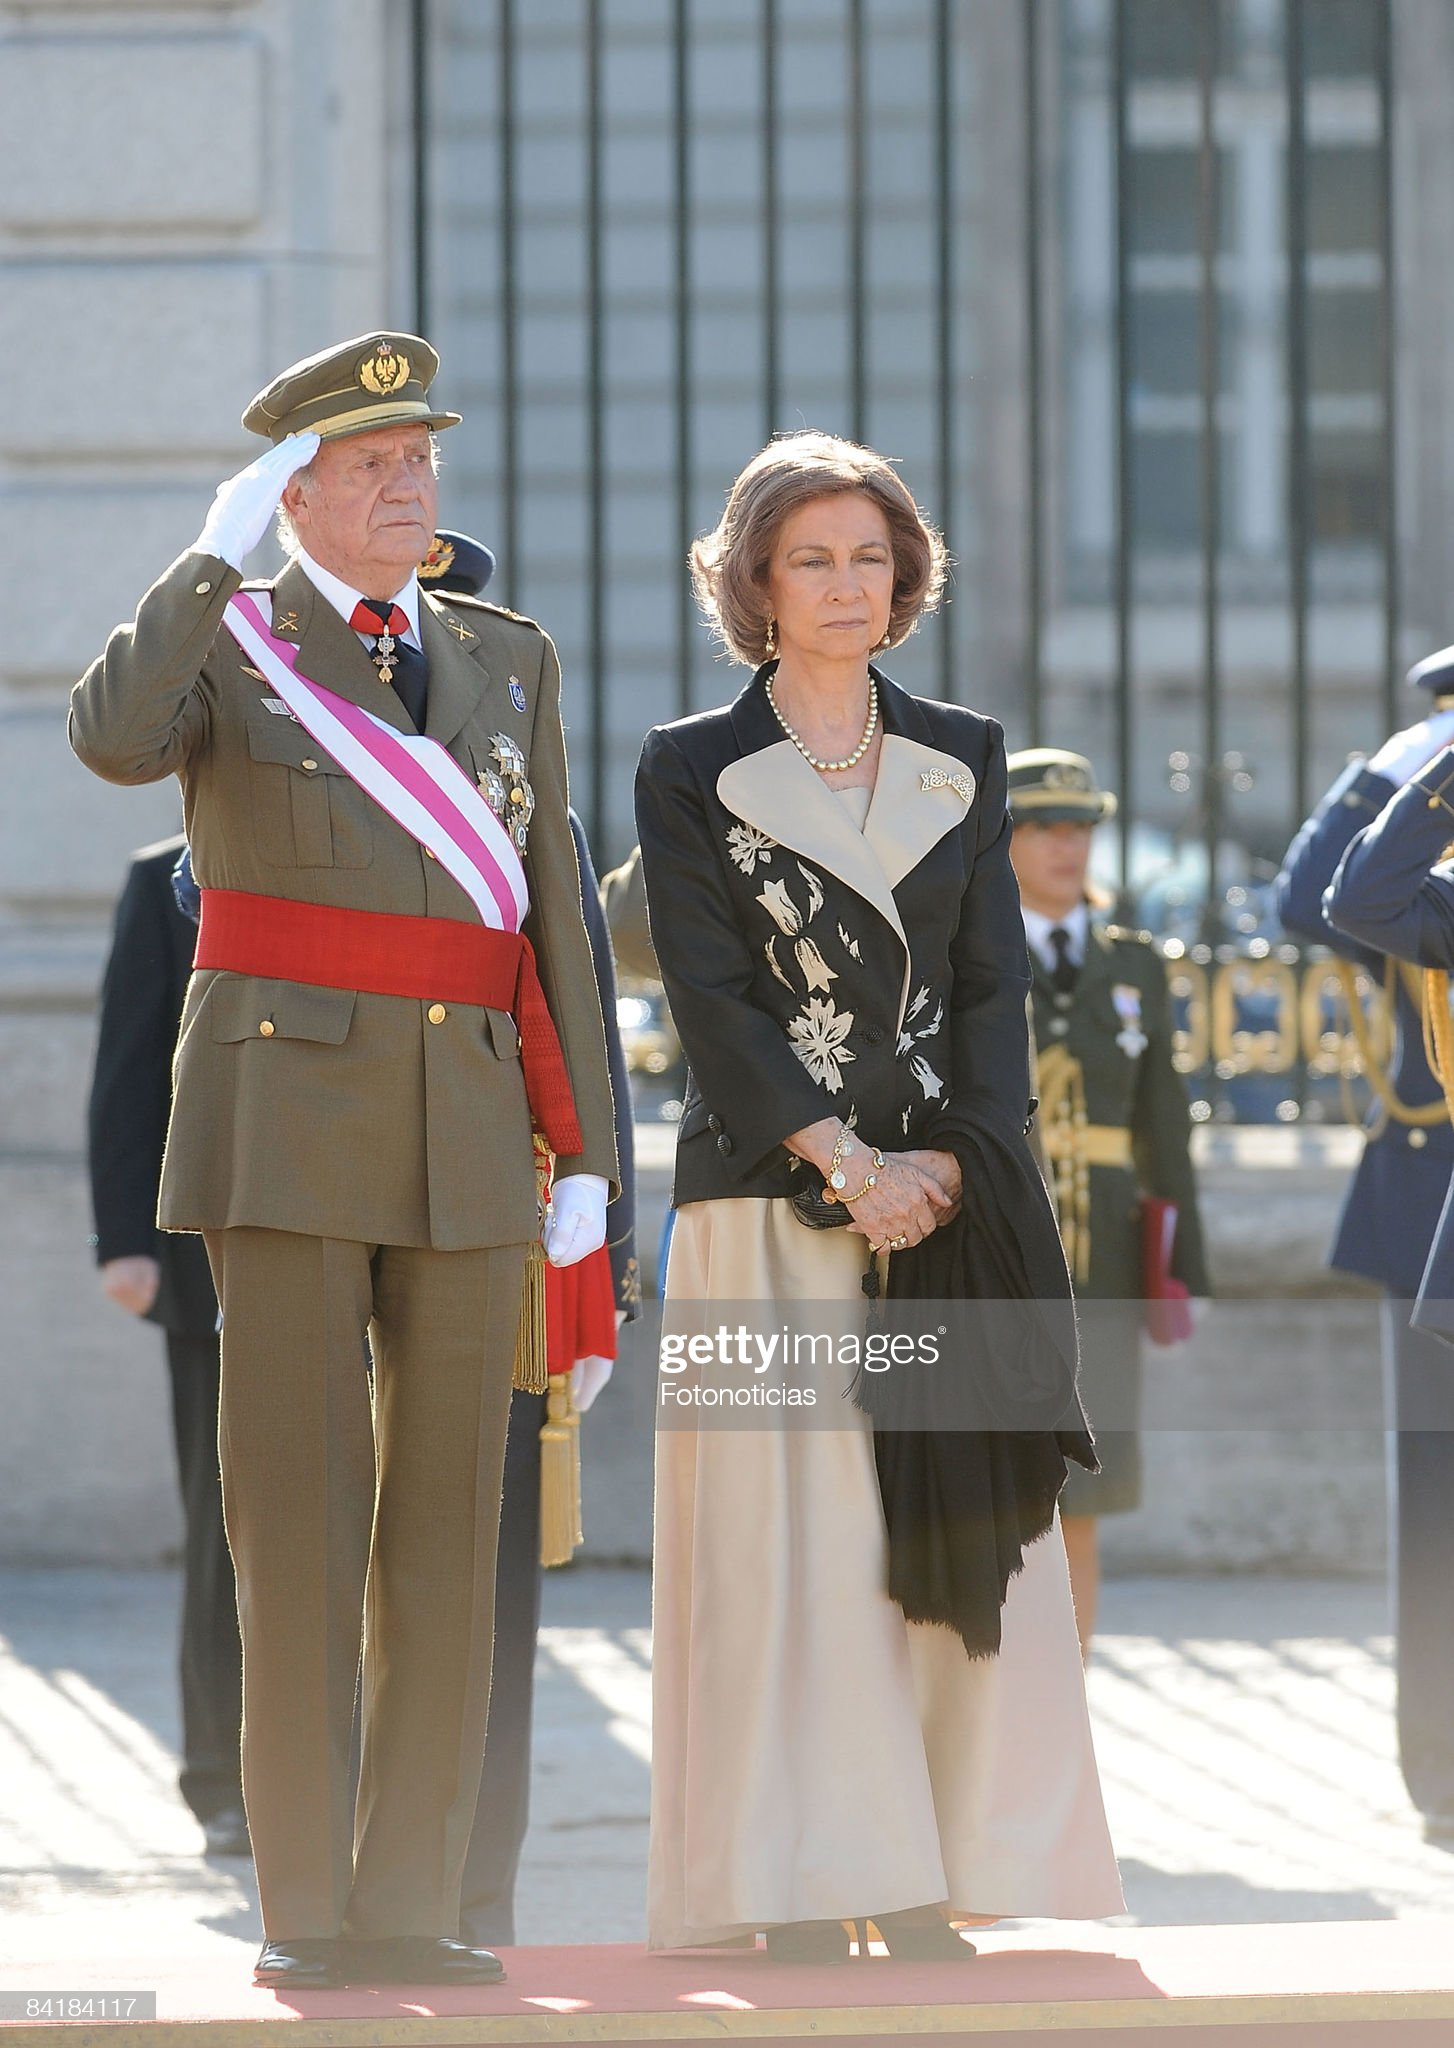 Spanish Royals Attend New Year Military Pasques Reception : News Photo